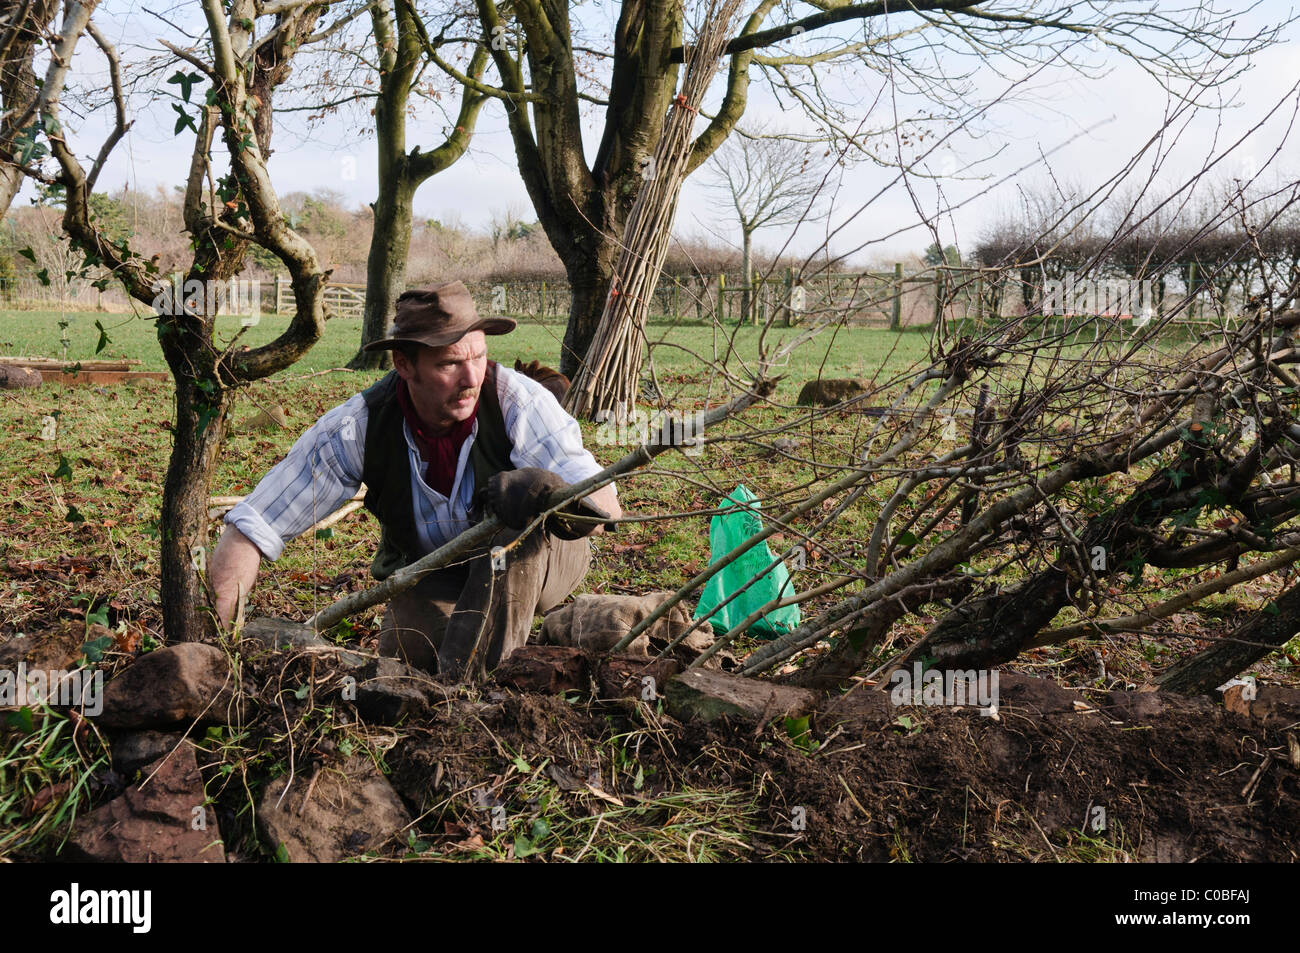 Man layering a hedge - an old traditional Irish method for creating thick hedges in fields Stock Photo